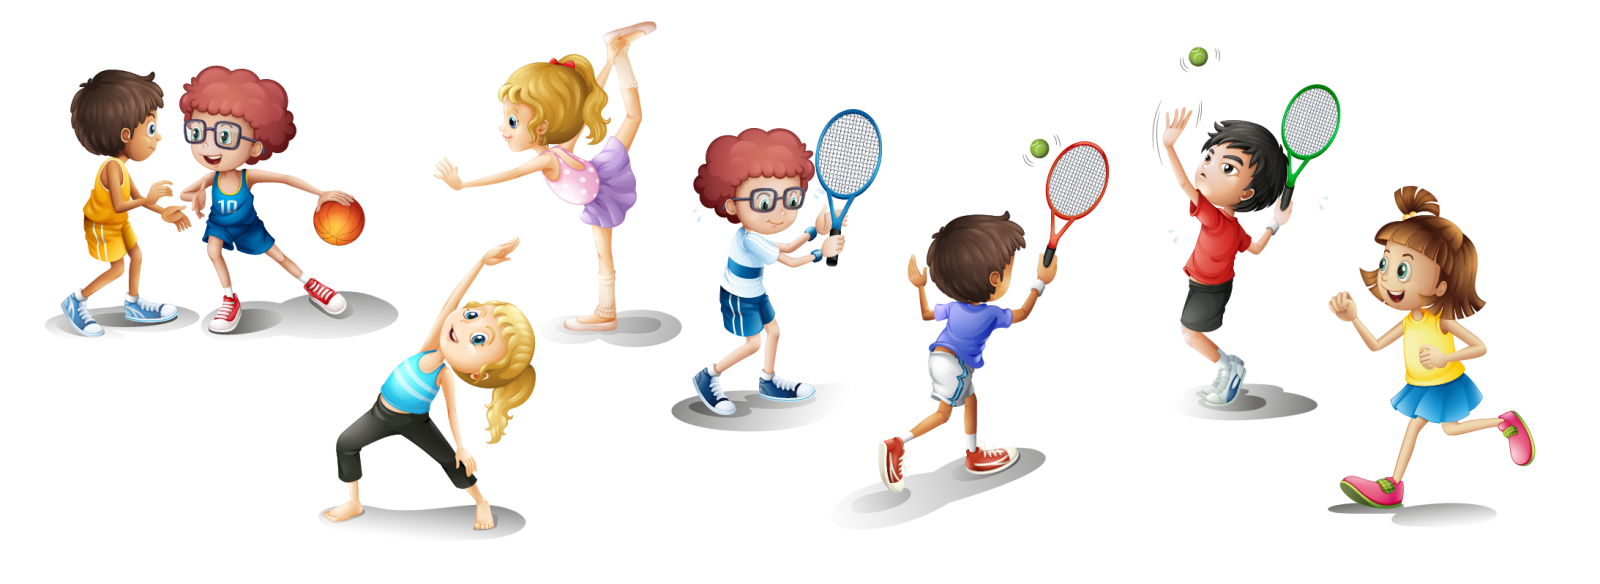 Exercising clipart physical play. Exercise child clip art